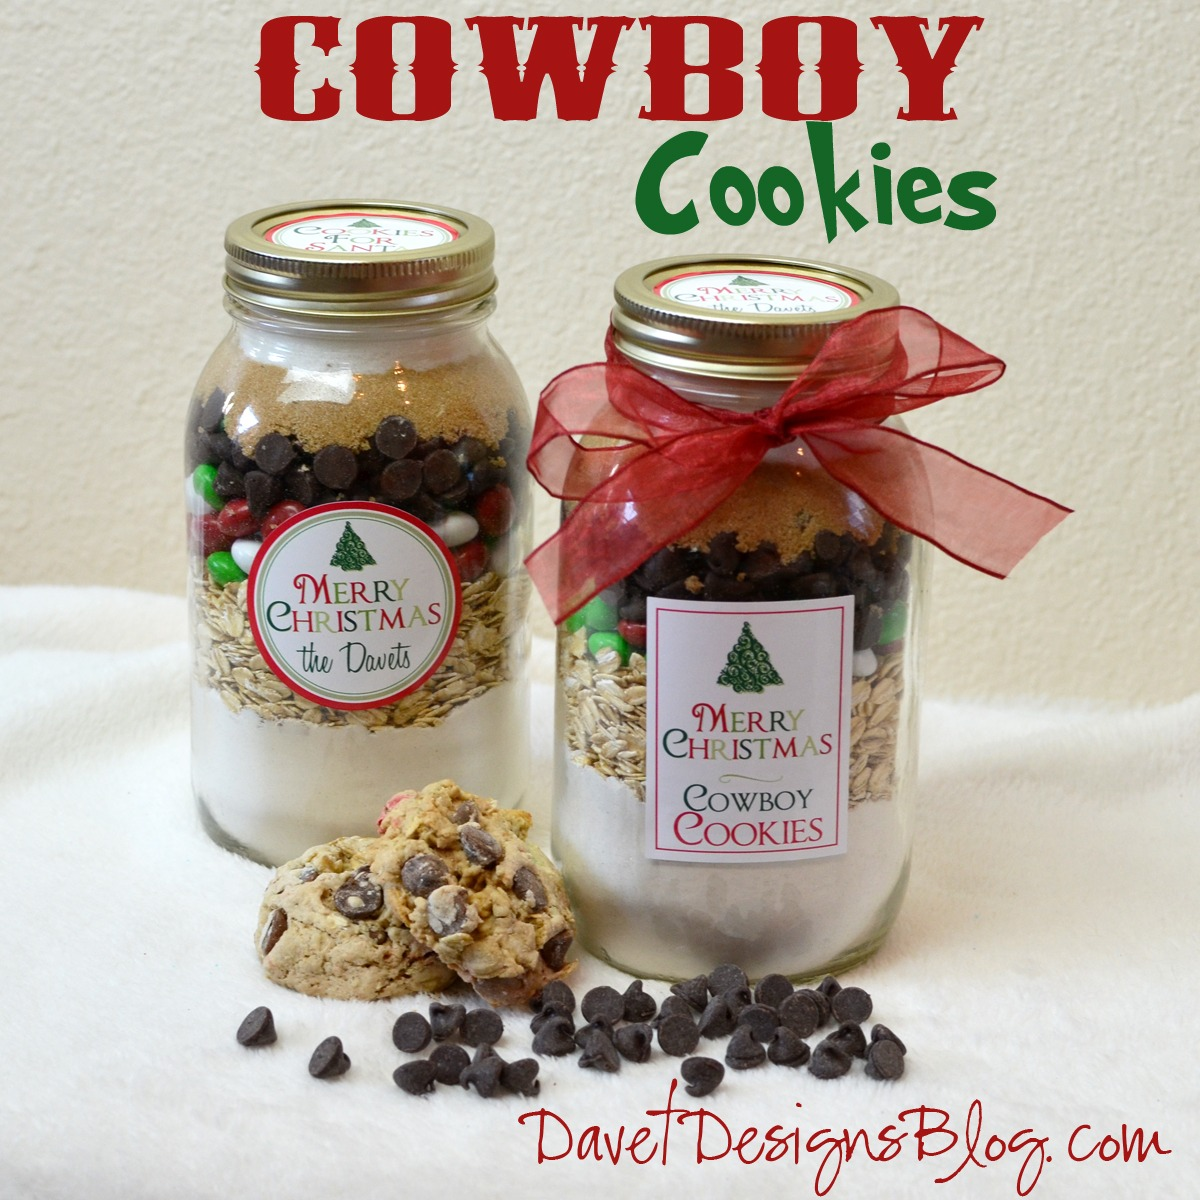 Craft Ideas And More From Davet Designs  8th Day Of Christmas In A